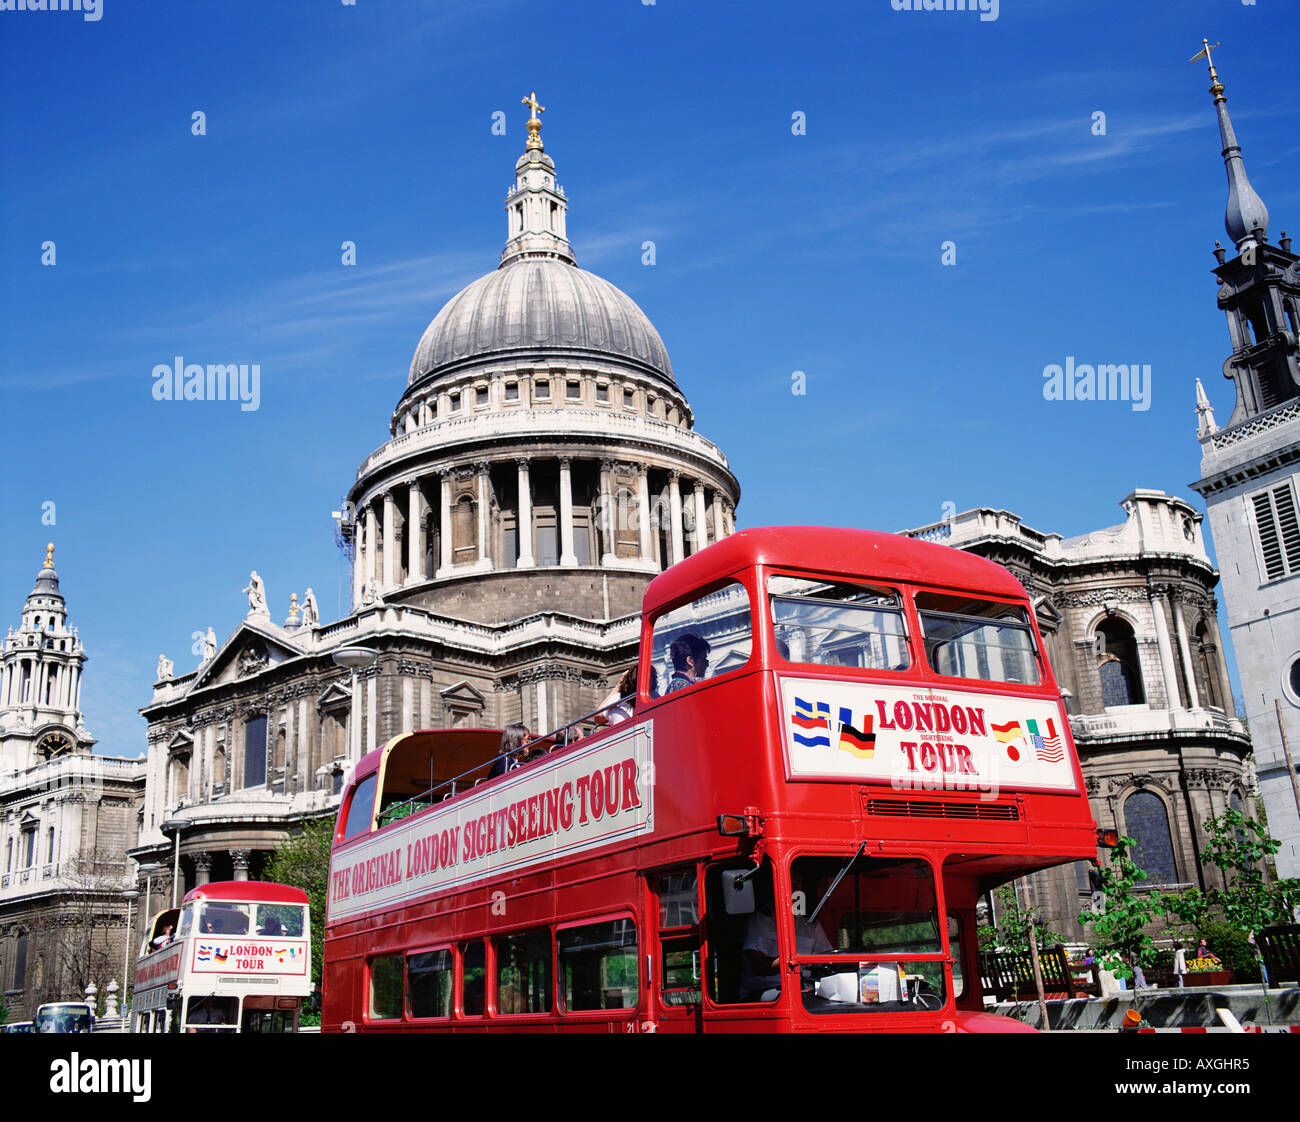 Sightseeing tour bus at St Paul's Cathedral, London, England, Great Britain, GB, UK. - Stock Image